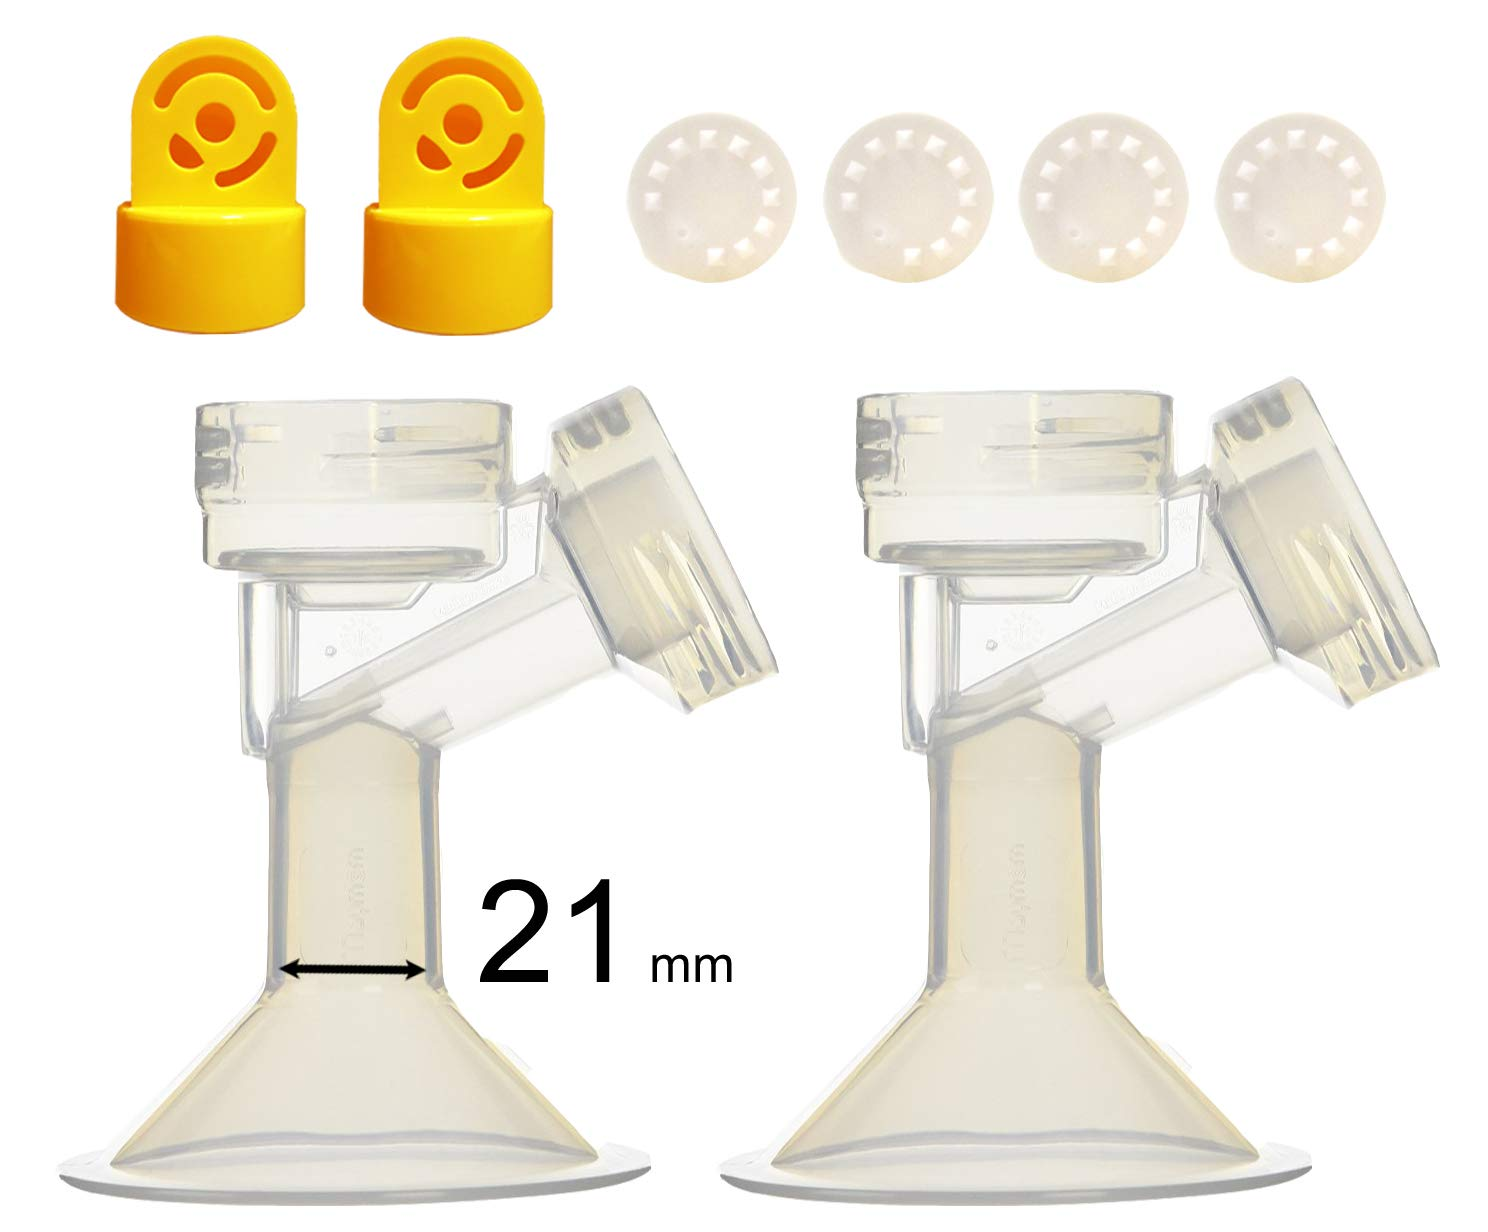 21 mm 2xOne-Piece Small Breastshield w/ Valve and Membrane for Medela Breast Pumps; Replacement to Medela PersonalFit 21 Breastshield and Personal Fit Connector; Made by Maymom